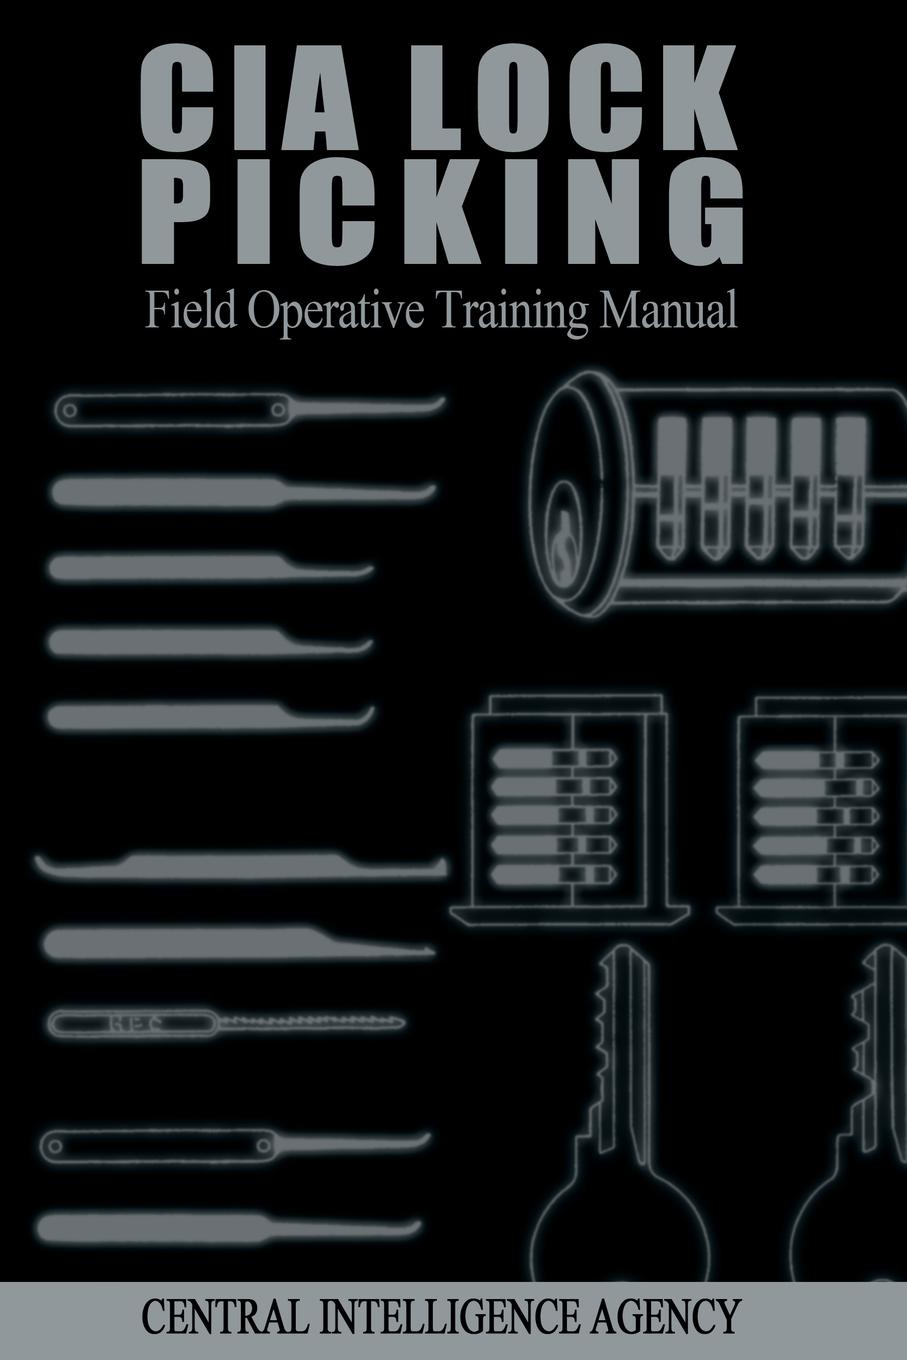 Central Intelligence Agency CIA Lock Picking. Field Operative Training Manual neje hb0001 19 20 in 1 classical manganese steel unlocking lock picking tool set silver